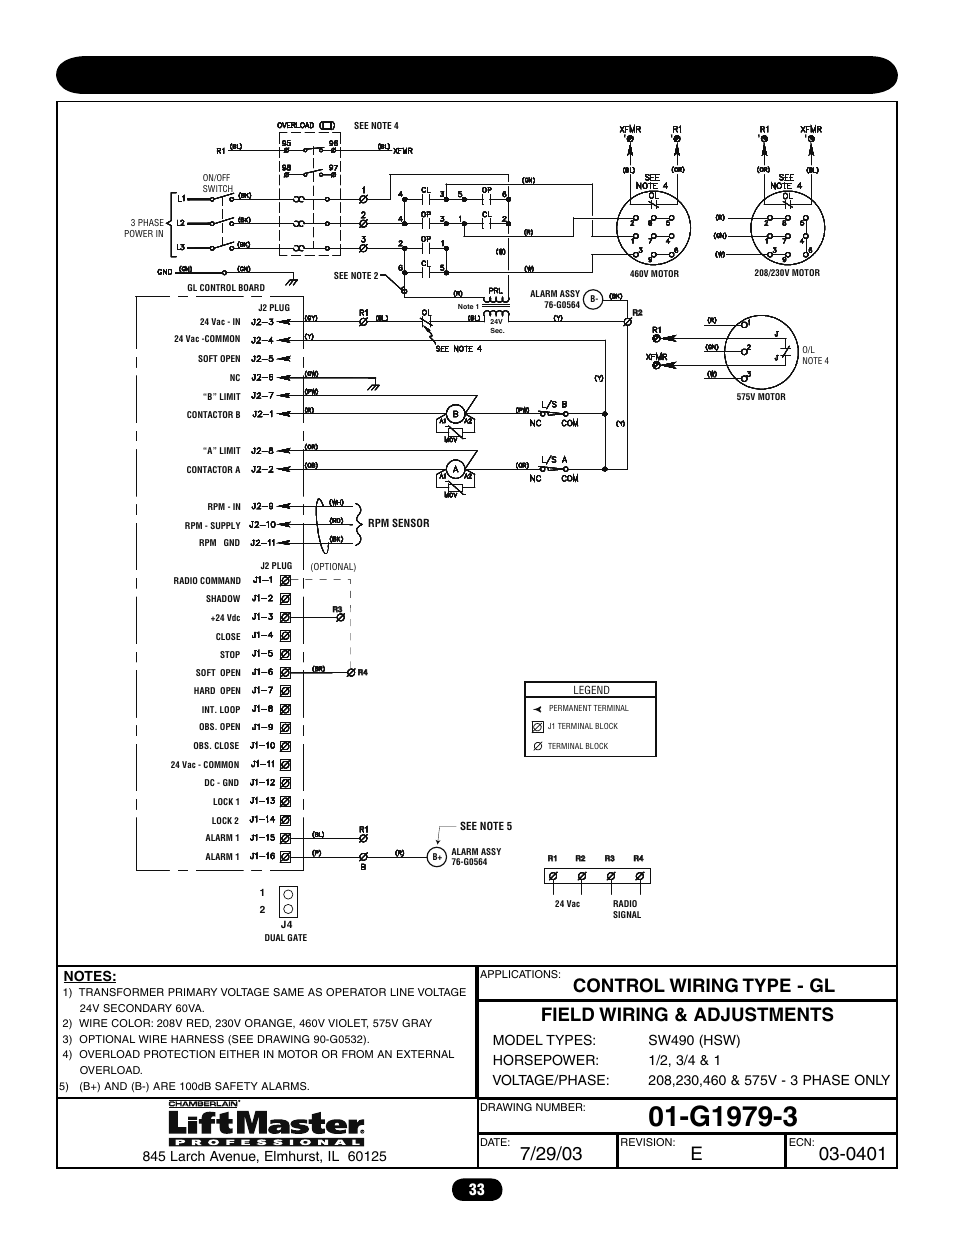 Three phase wiring diagram (sw490) | Chamberlain LIFTMASTER PROFESSIONAL  SW470 User Manual | Page